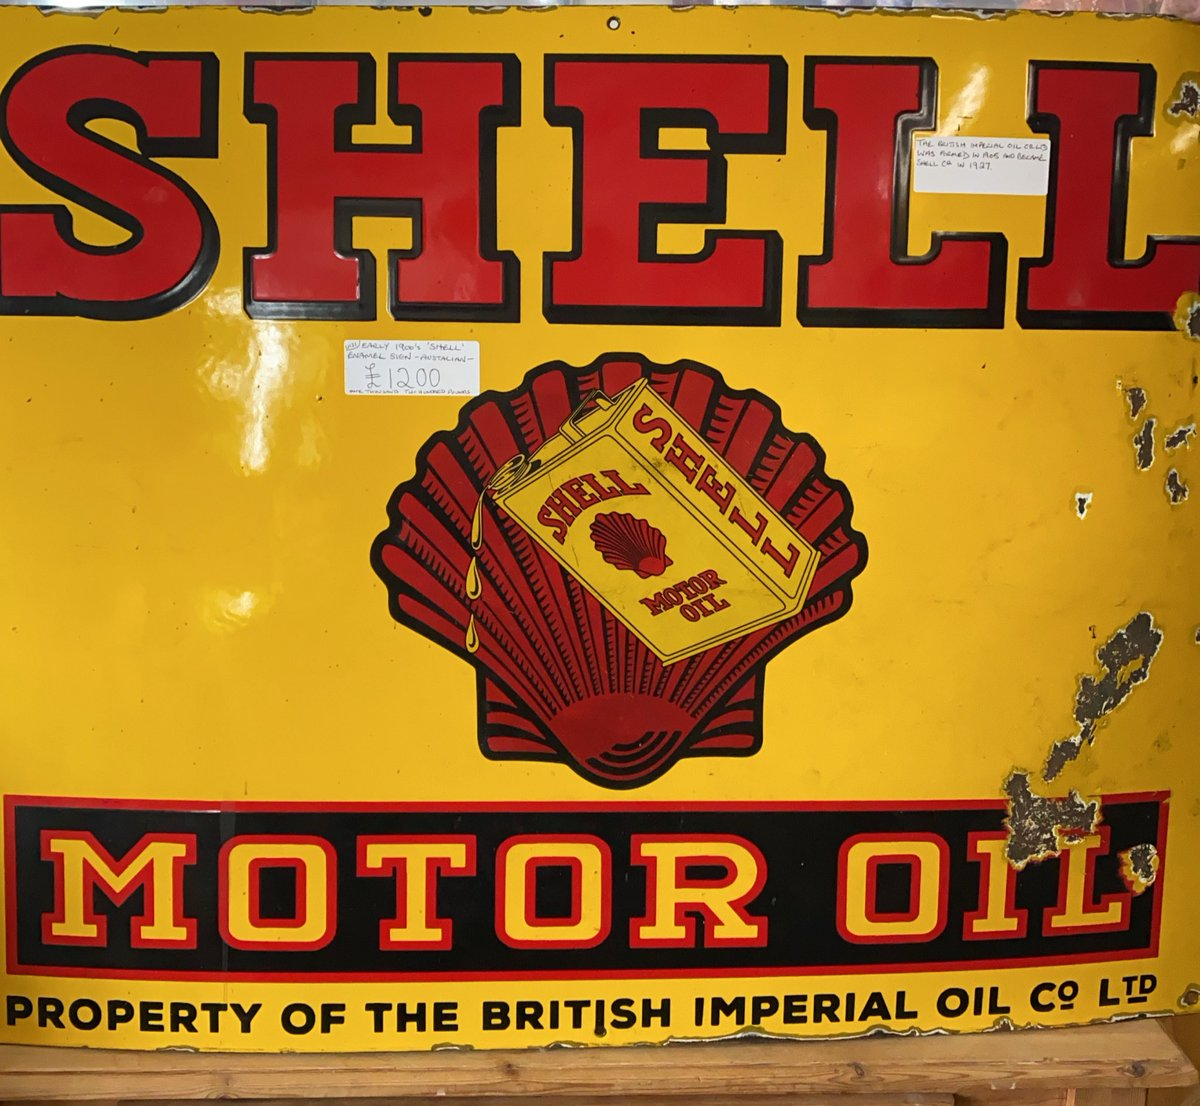 The British imperial oil co ltd was formed in 1905 and became Shell co in 1927. Early 1900 Shell enamel sign. Australian #shell #shellaustralia  #britishimperialoilco #enamelsign #astraantiquescentre #enamel #hemswell #lincolnshire #newstock https://t.co/DyD5xW5gwk